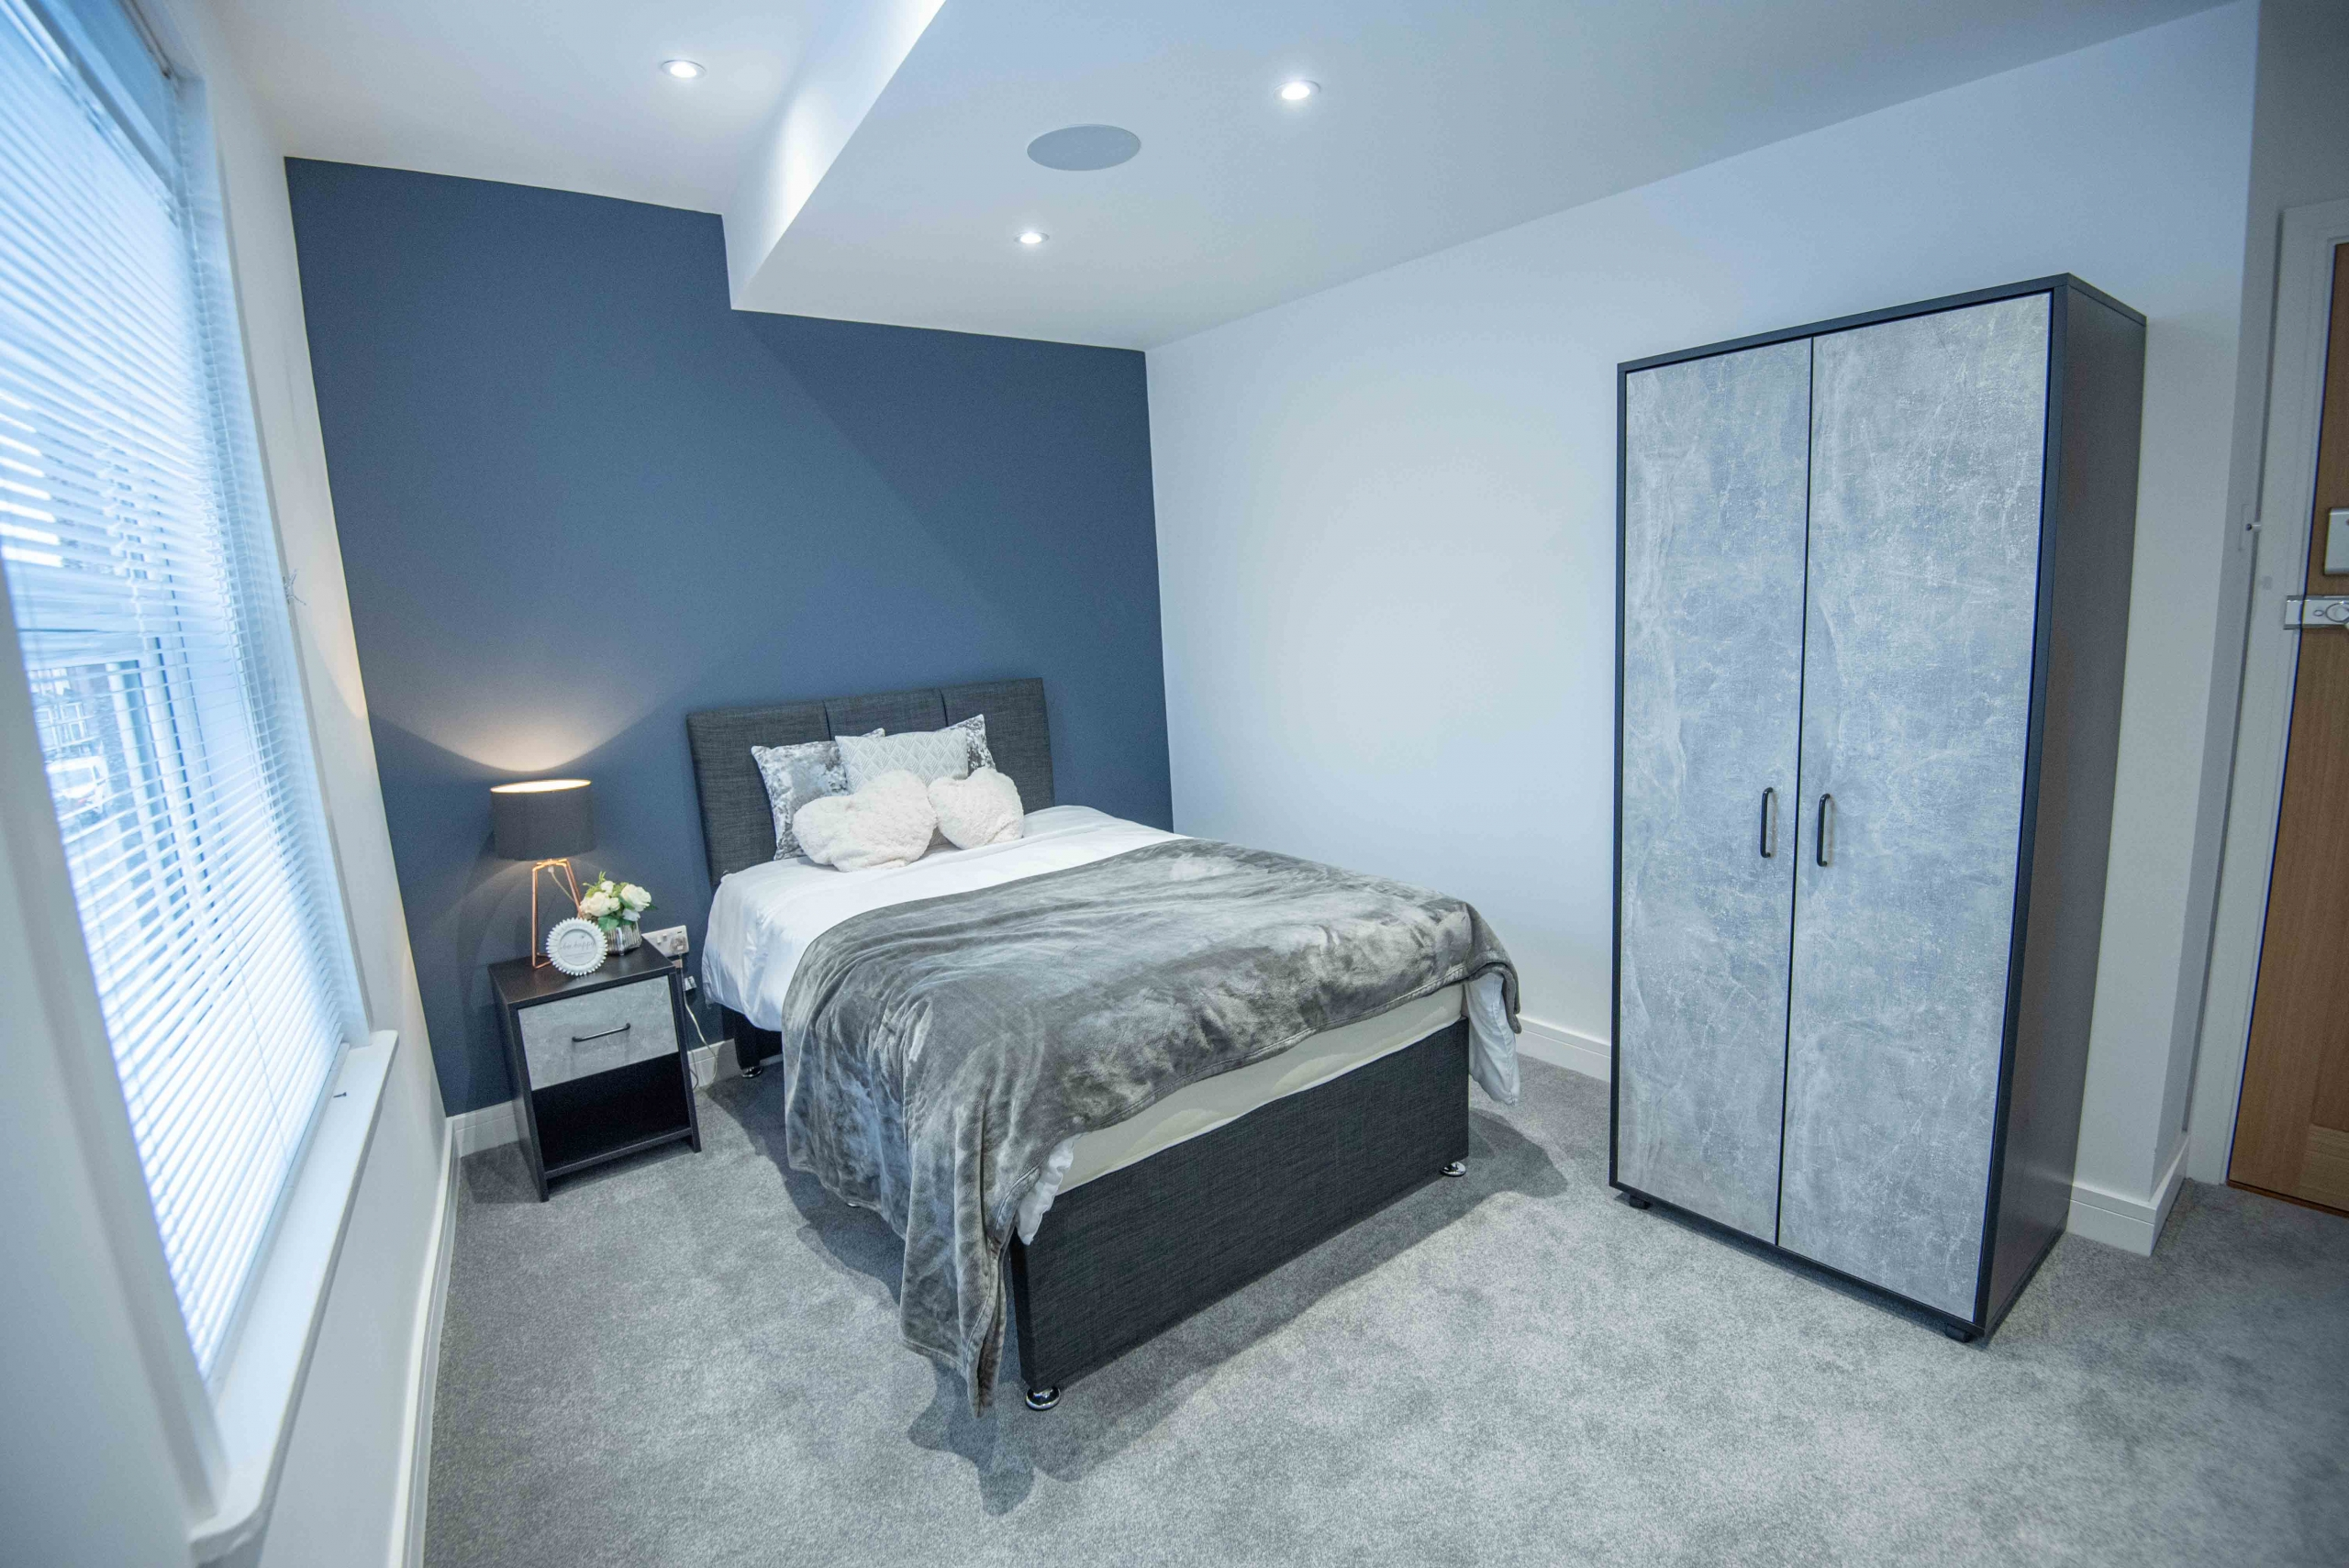 Student HMO Conversion Property Development by Applecore PDM in Southsea, Portsmouth in Hampshire